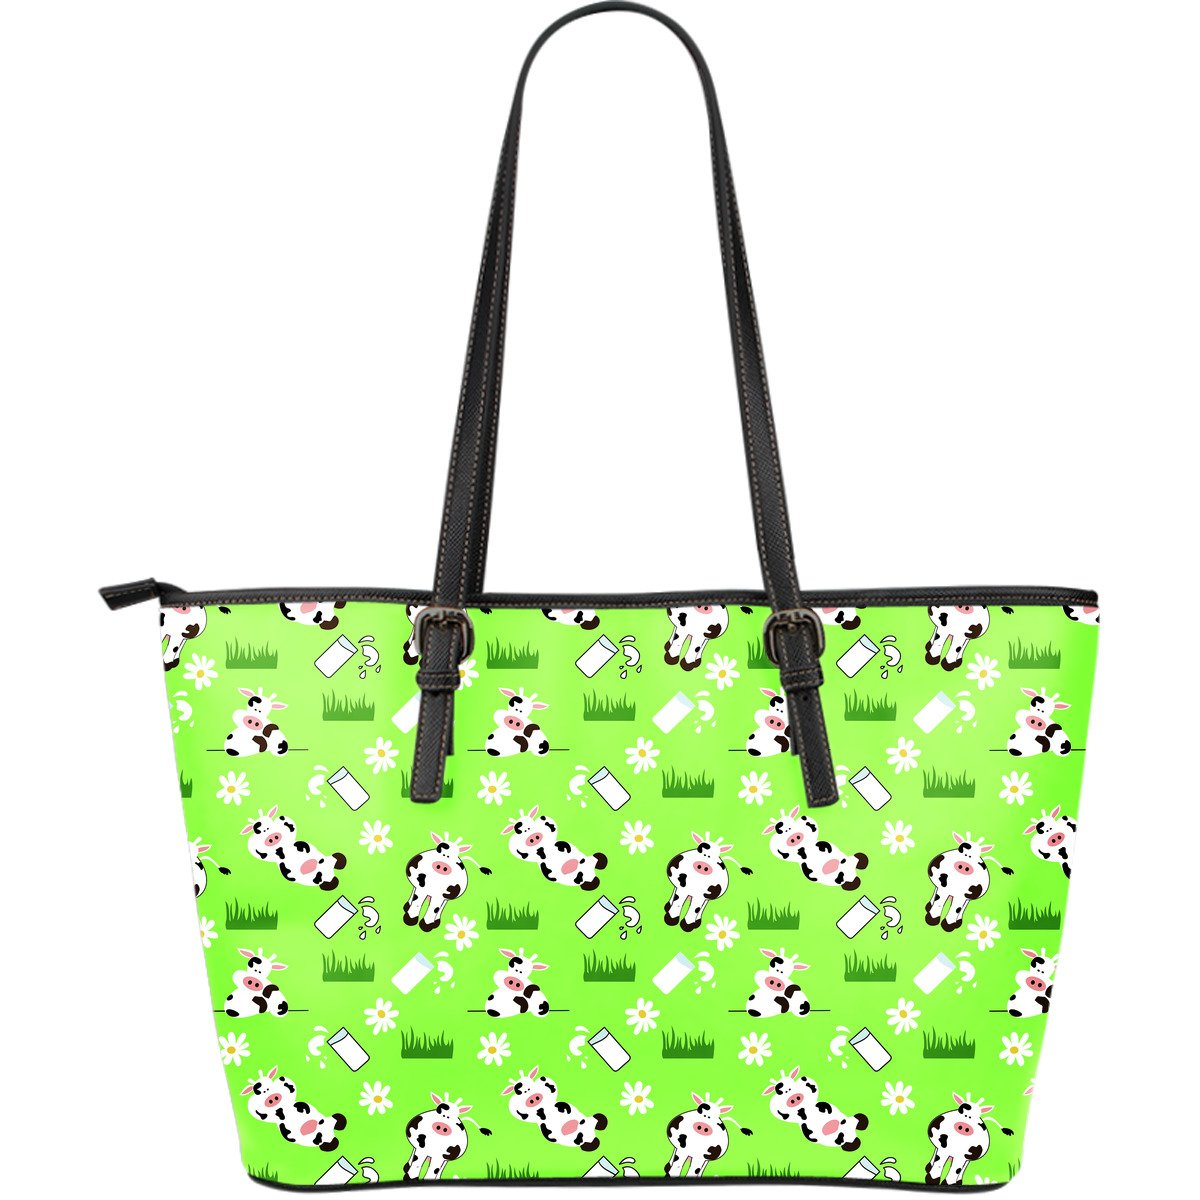 Cartoon Daisy And Cow Pattern Print Leather Tote Bag GearFrost